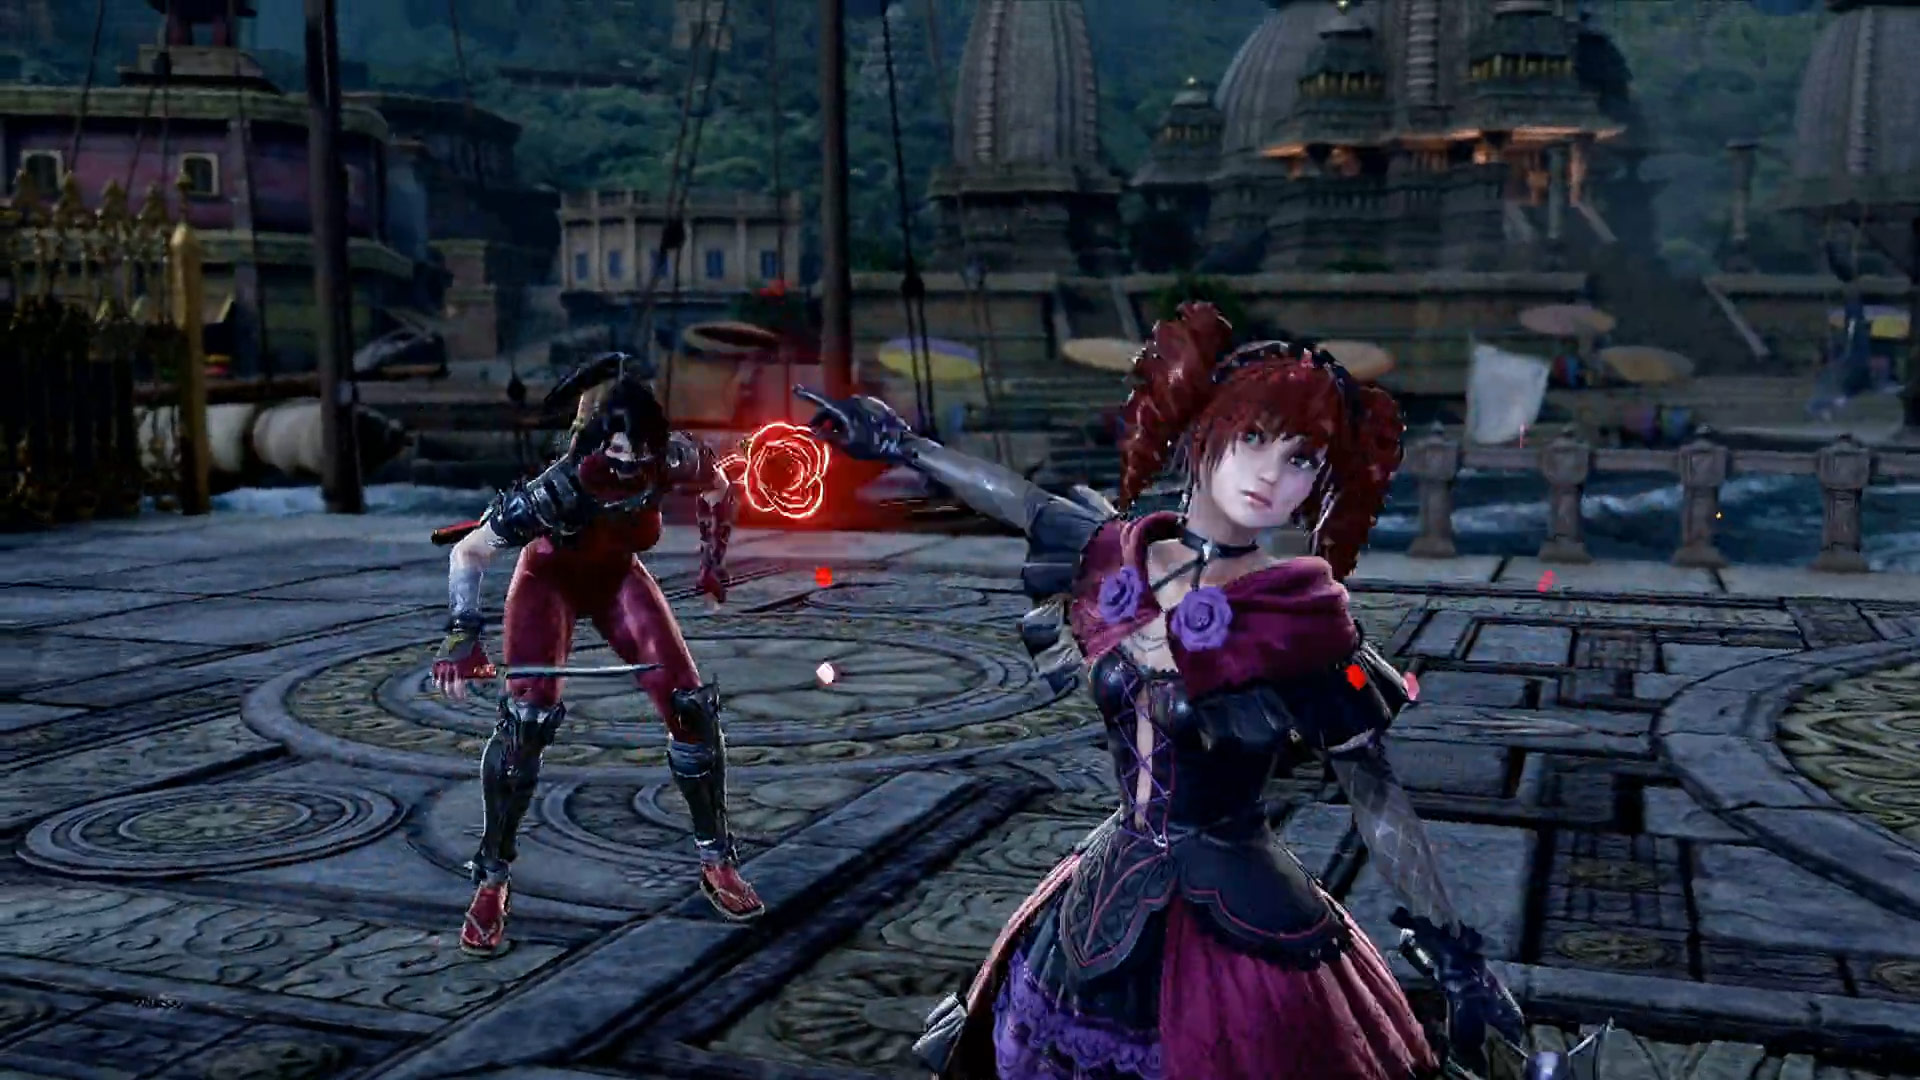 Soul Calibur 6 Amy Reveal 6 out of 9 image gallery